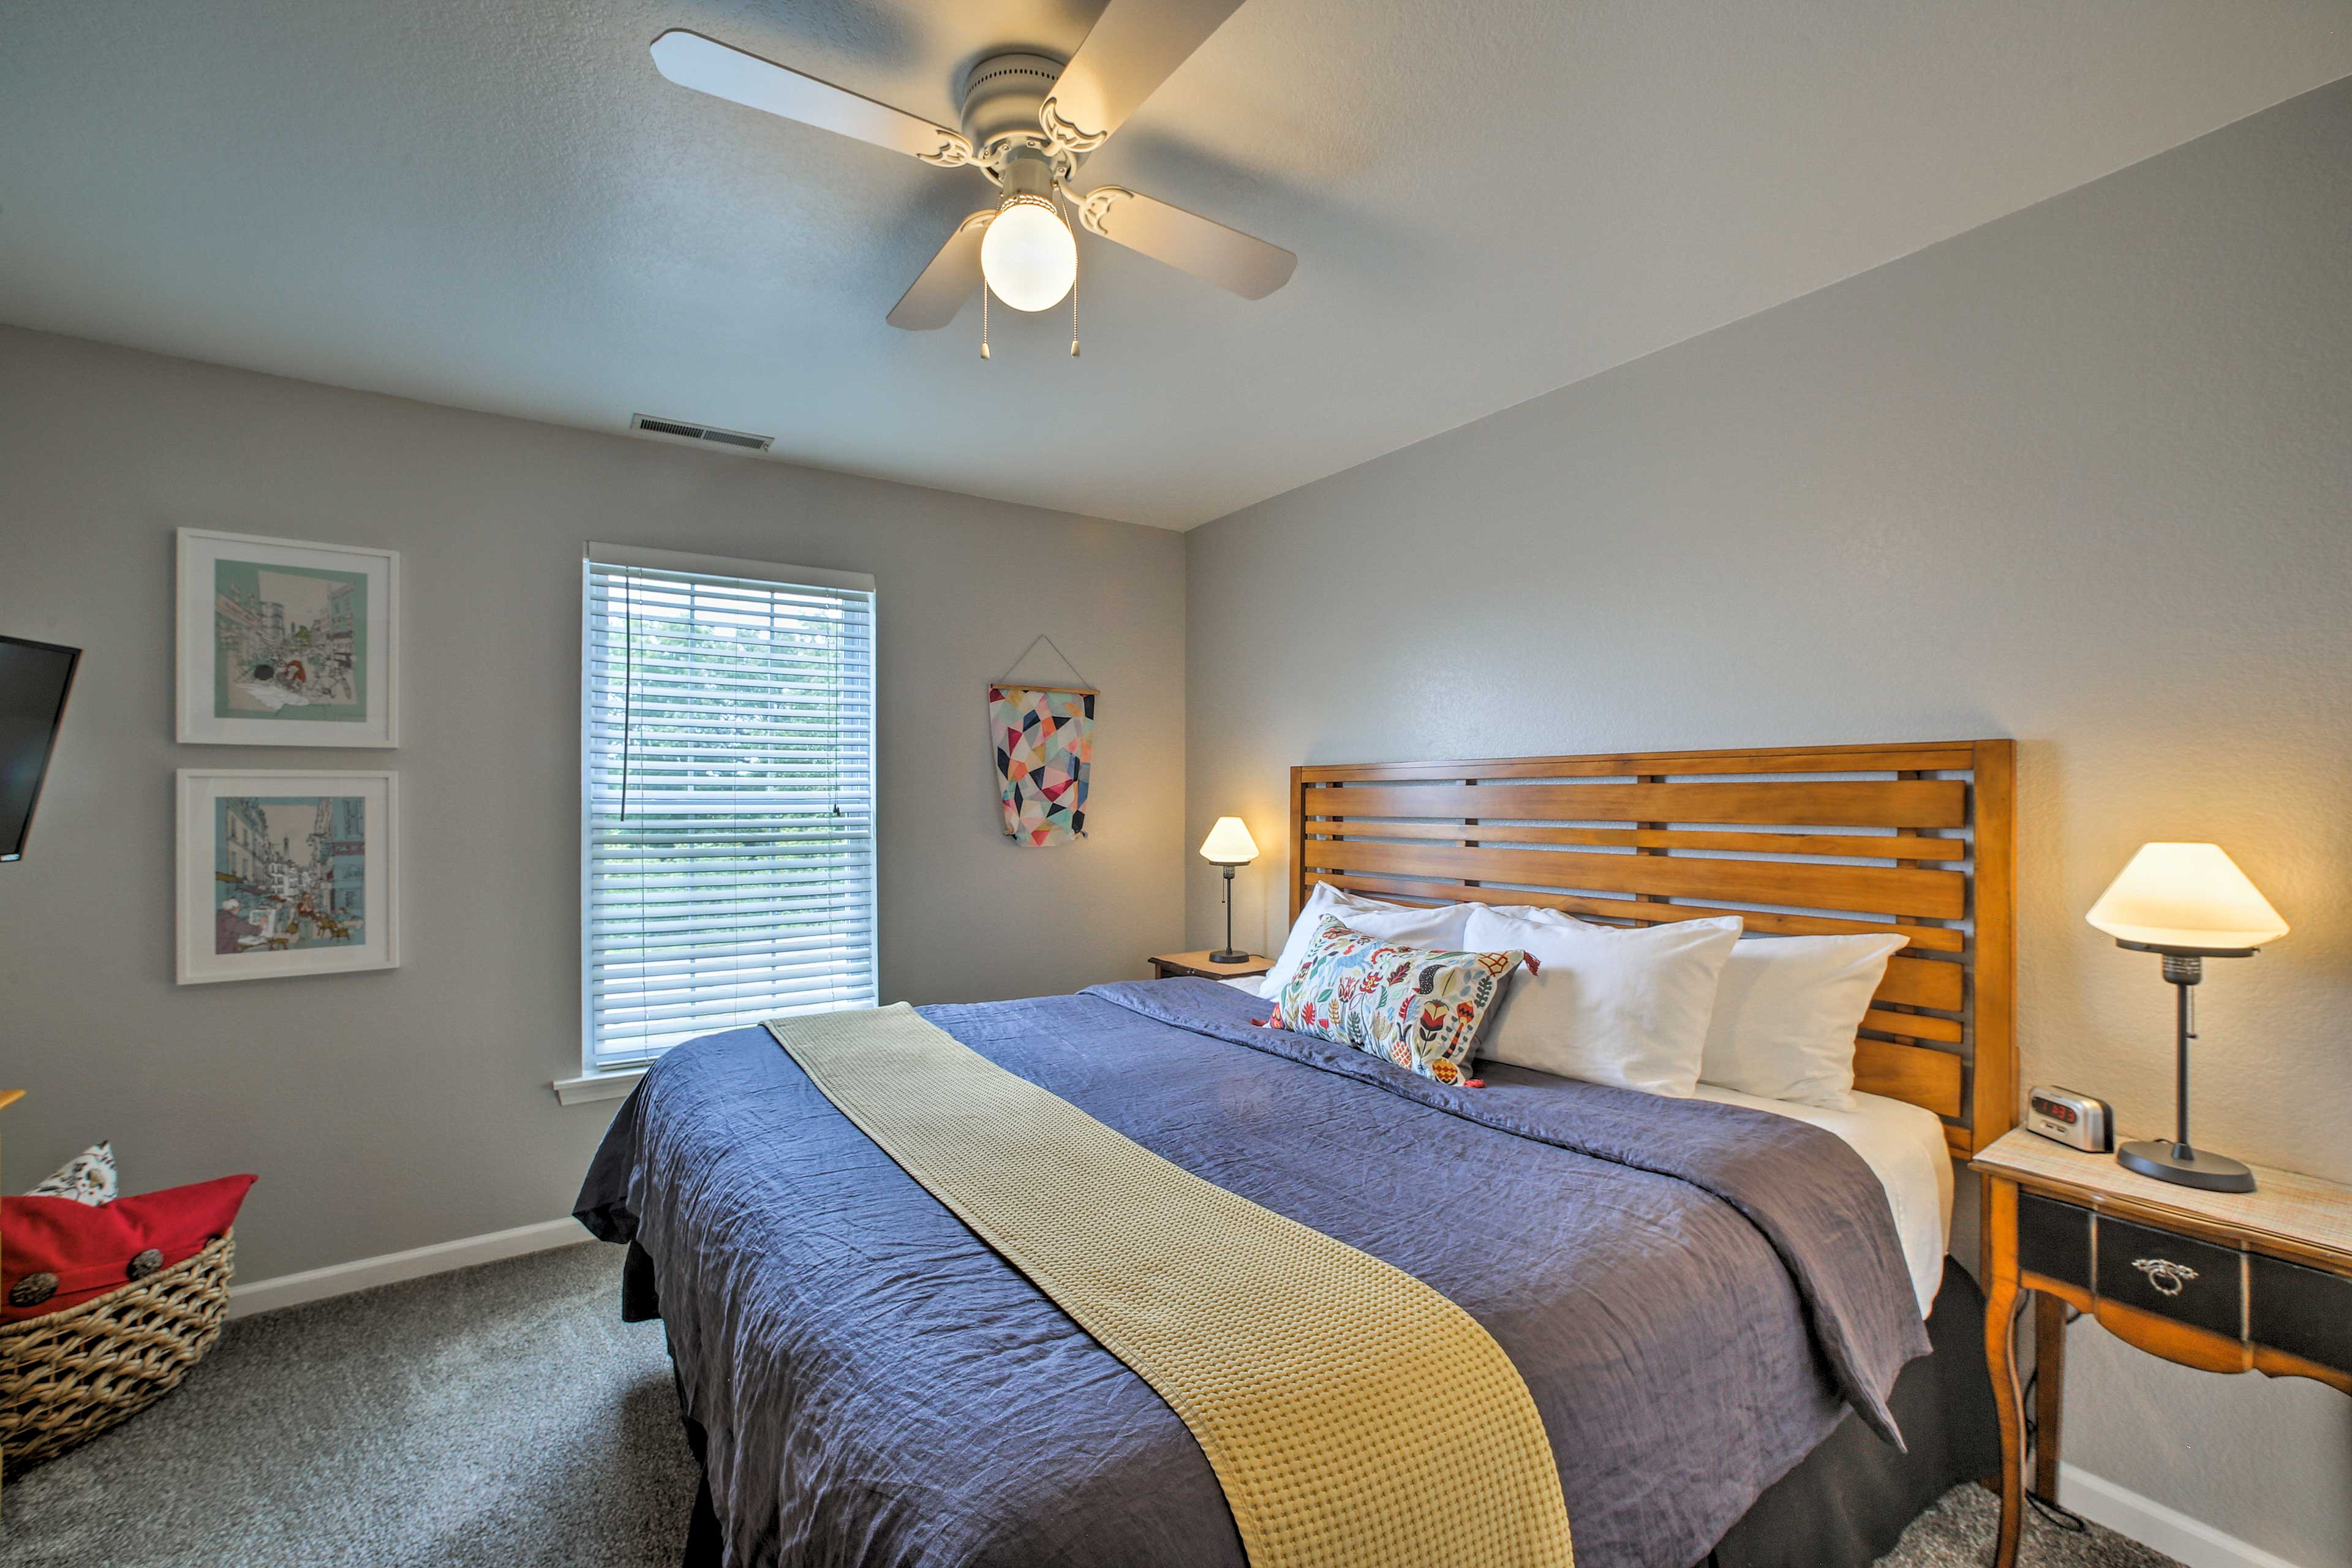 You'll find another king bed in this room.